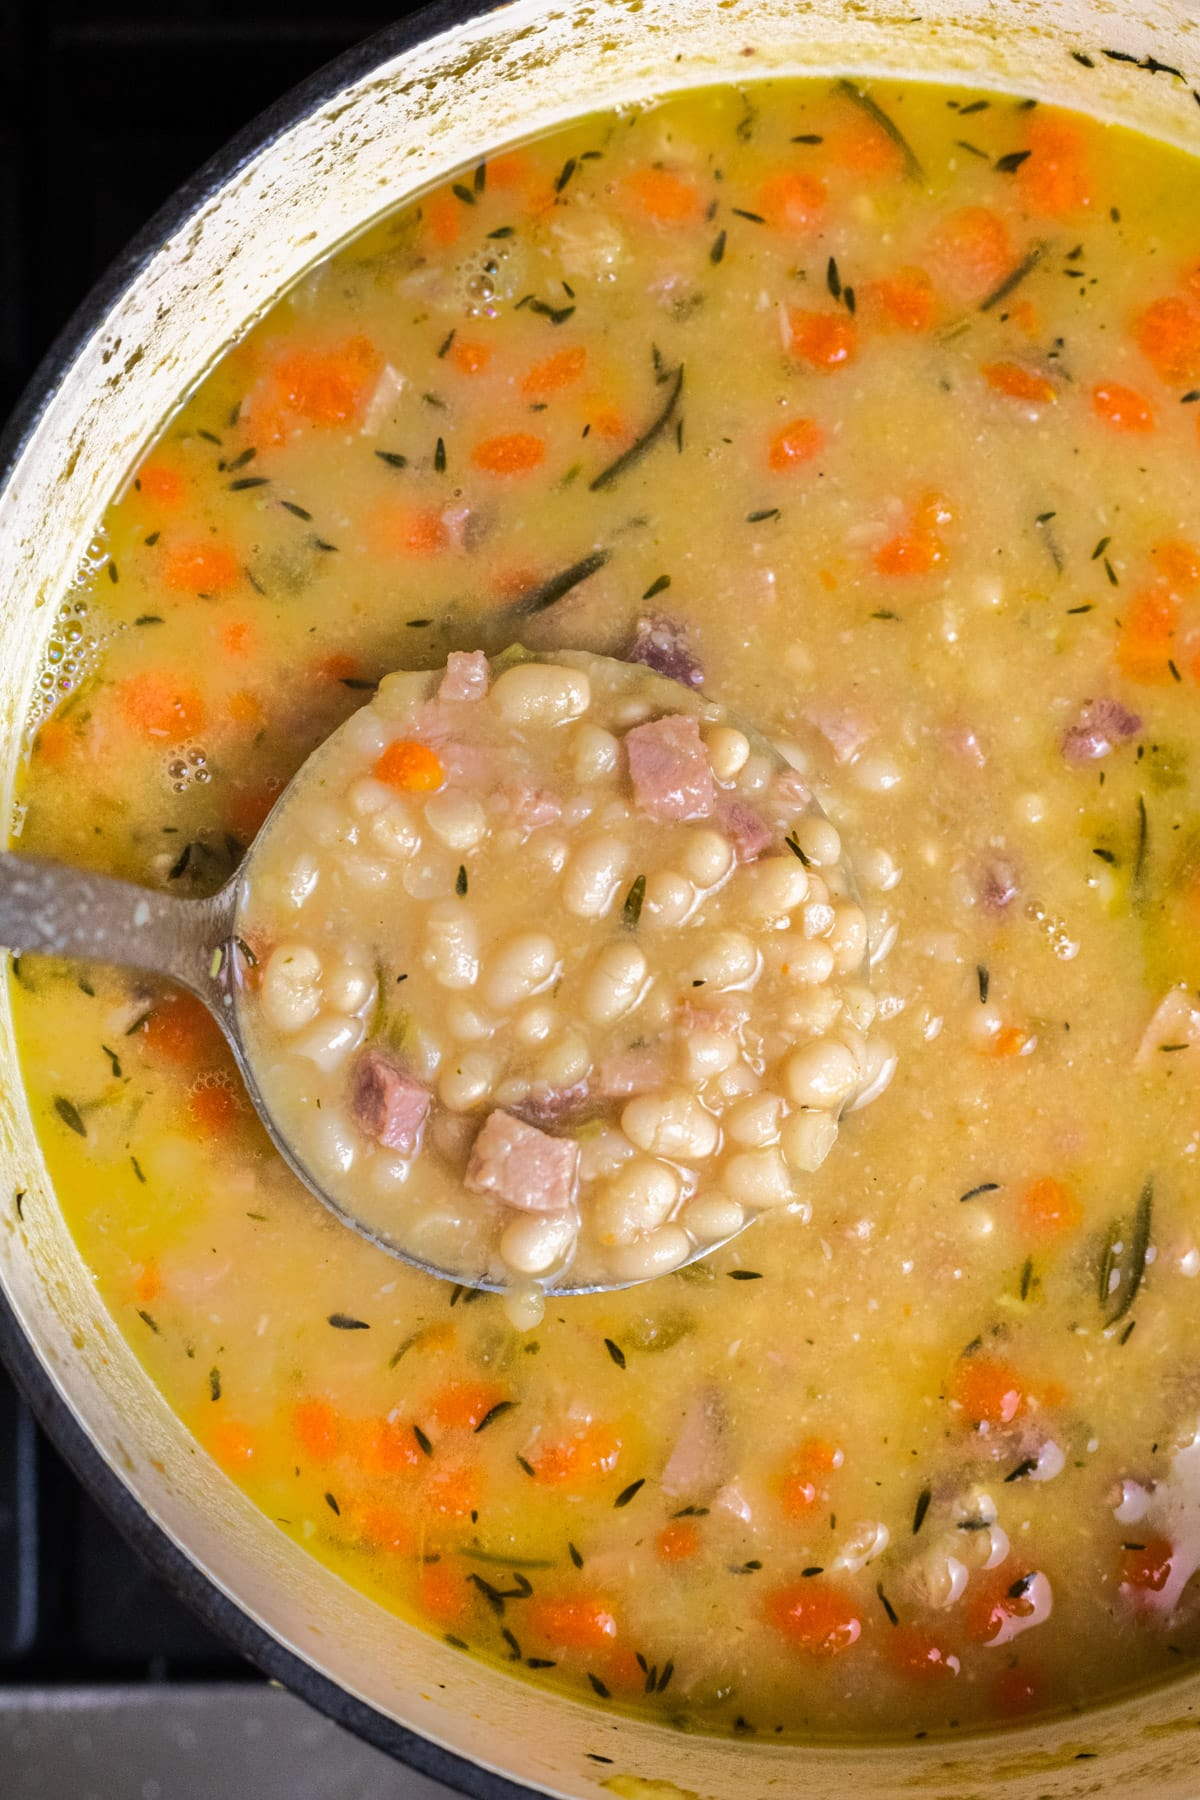 A top down view of cooked white bean and ham soup in a pot on the stove.